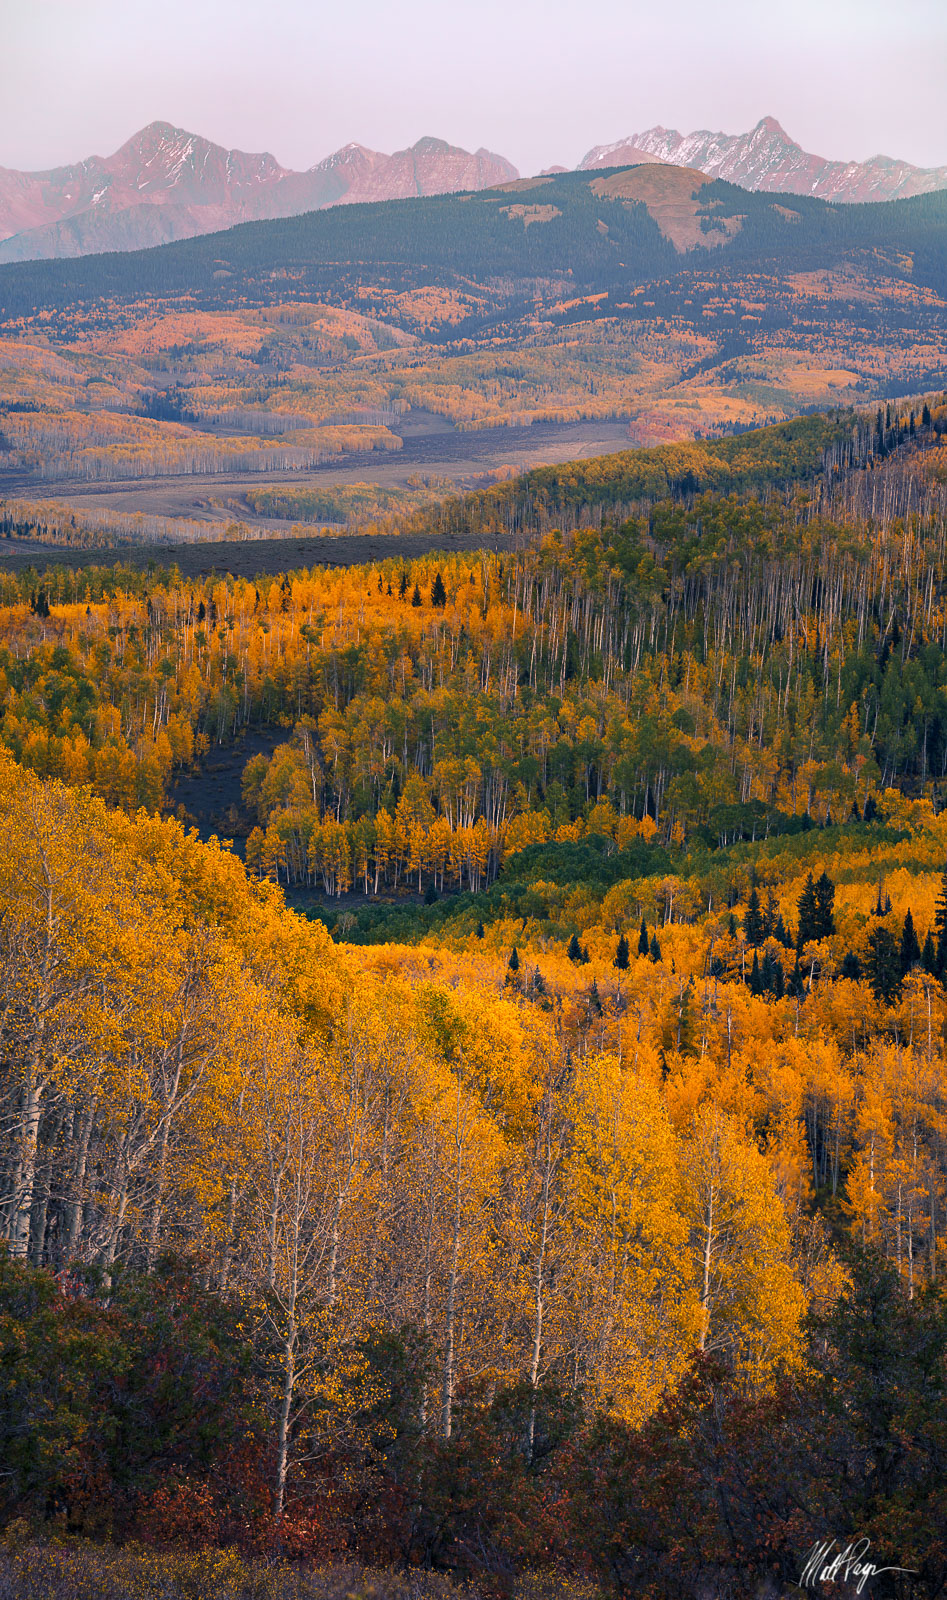 Utilizing a telephoto lens, I created this vertical panorama which includes scrub oak, aspen trees, large meadows, and towering...